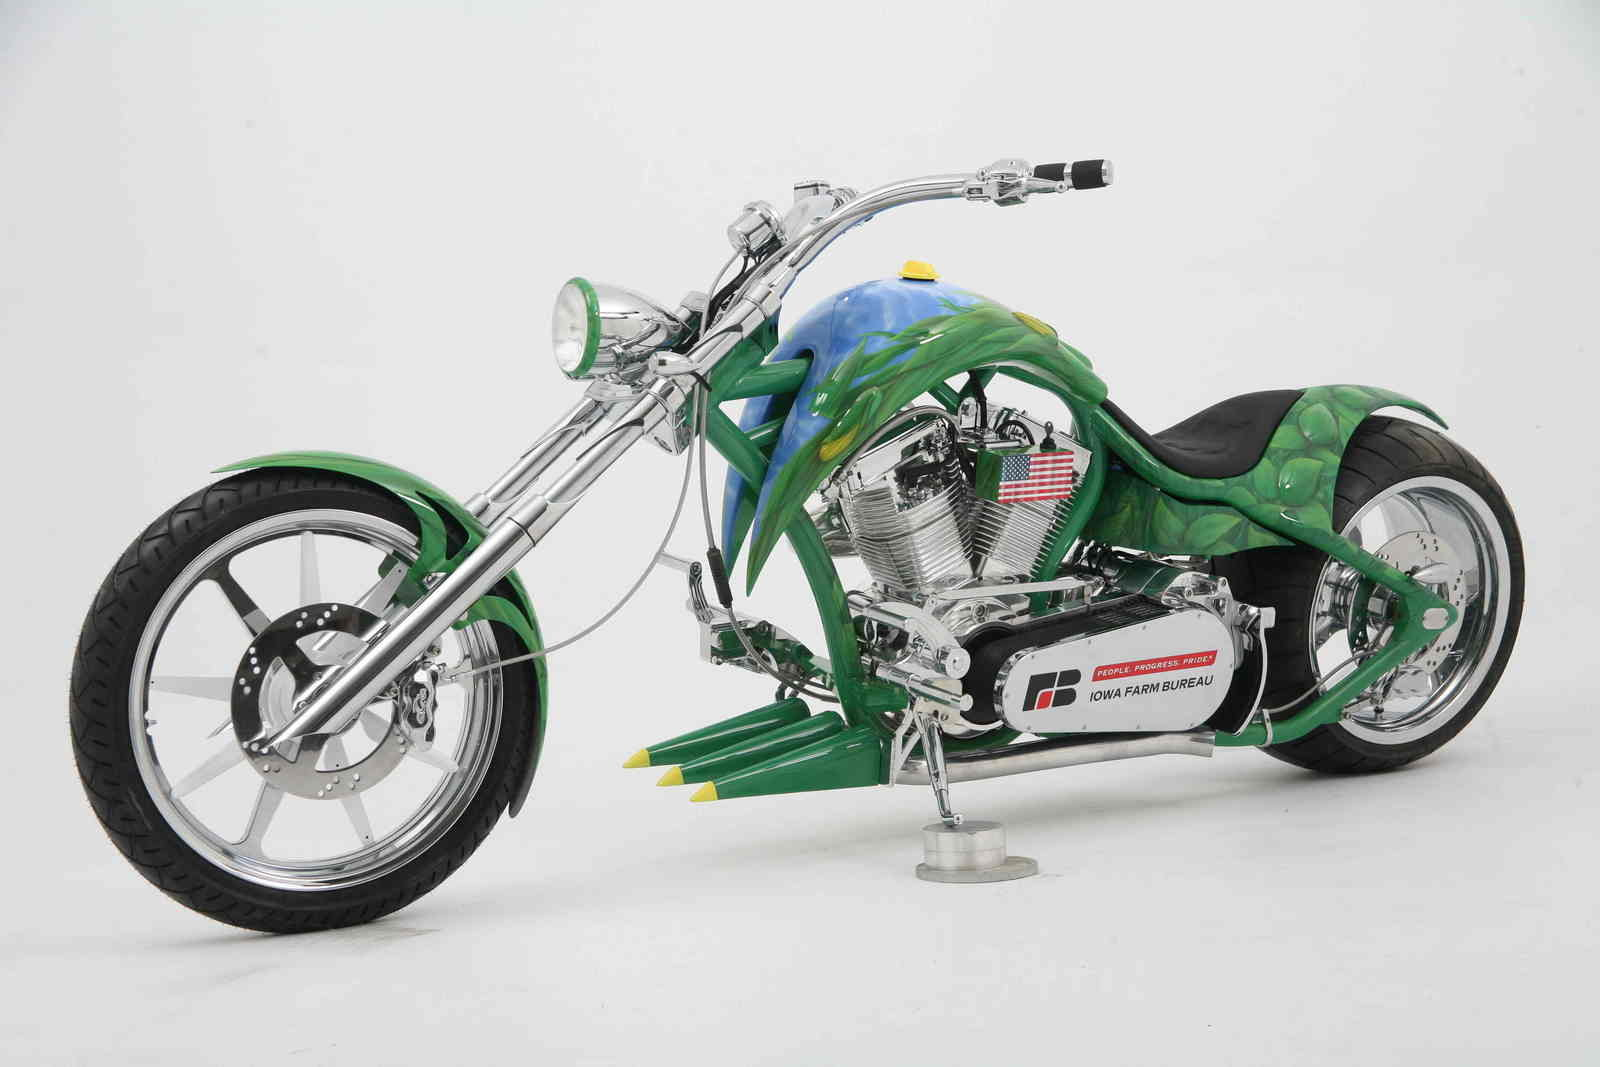 Yamaha Chopper Best Motorcycle Gallery Design